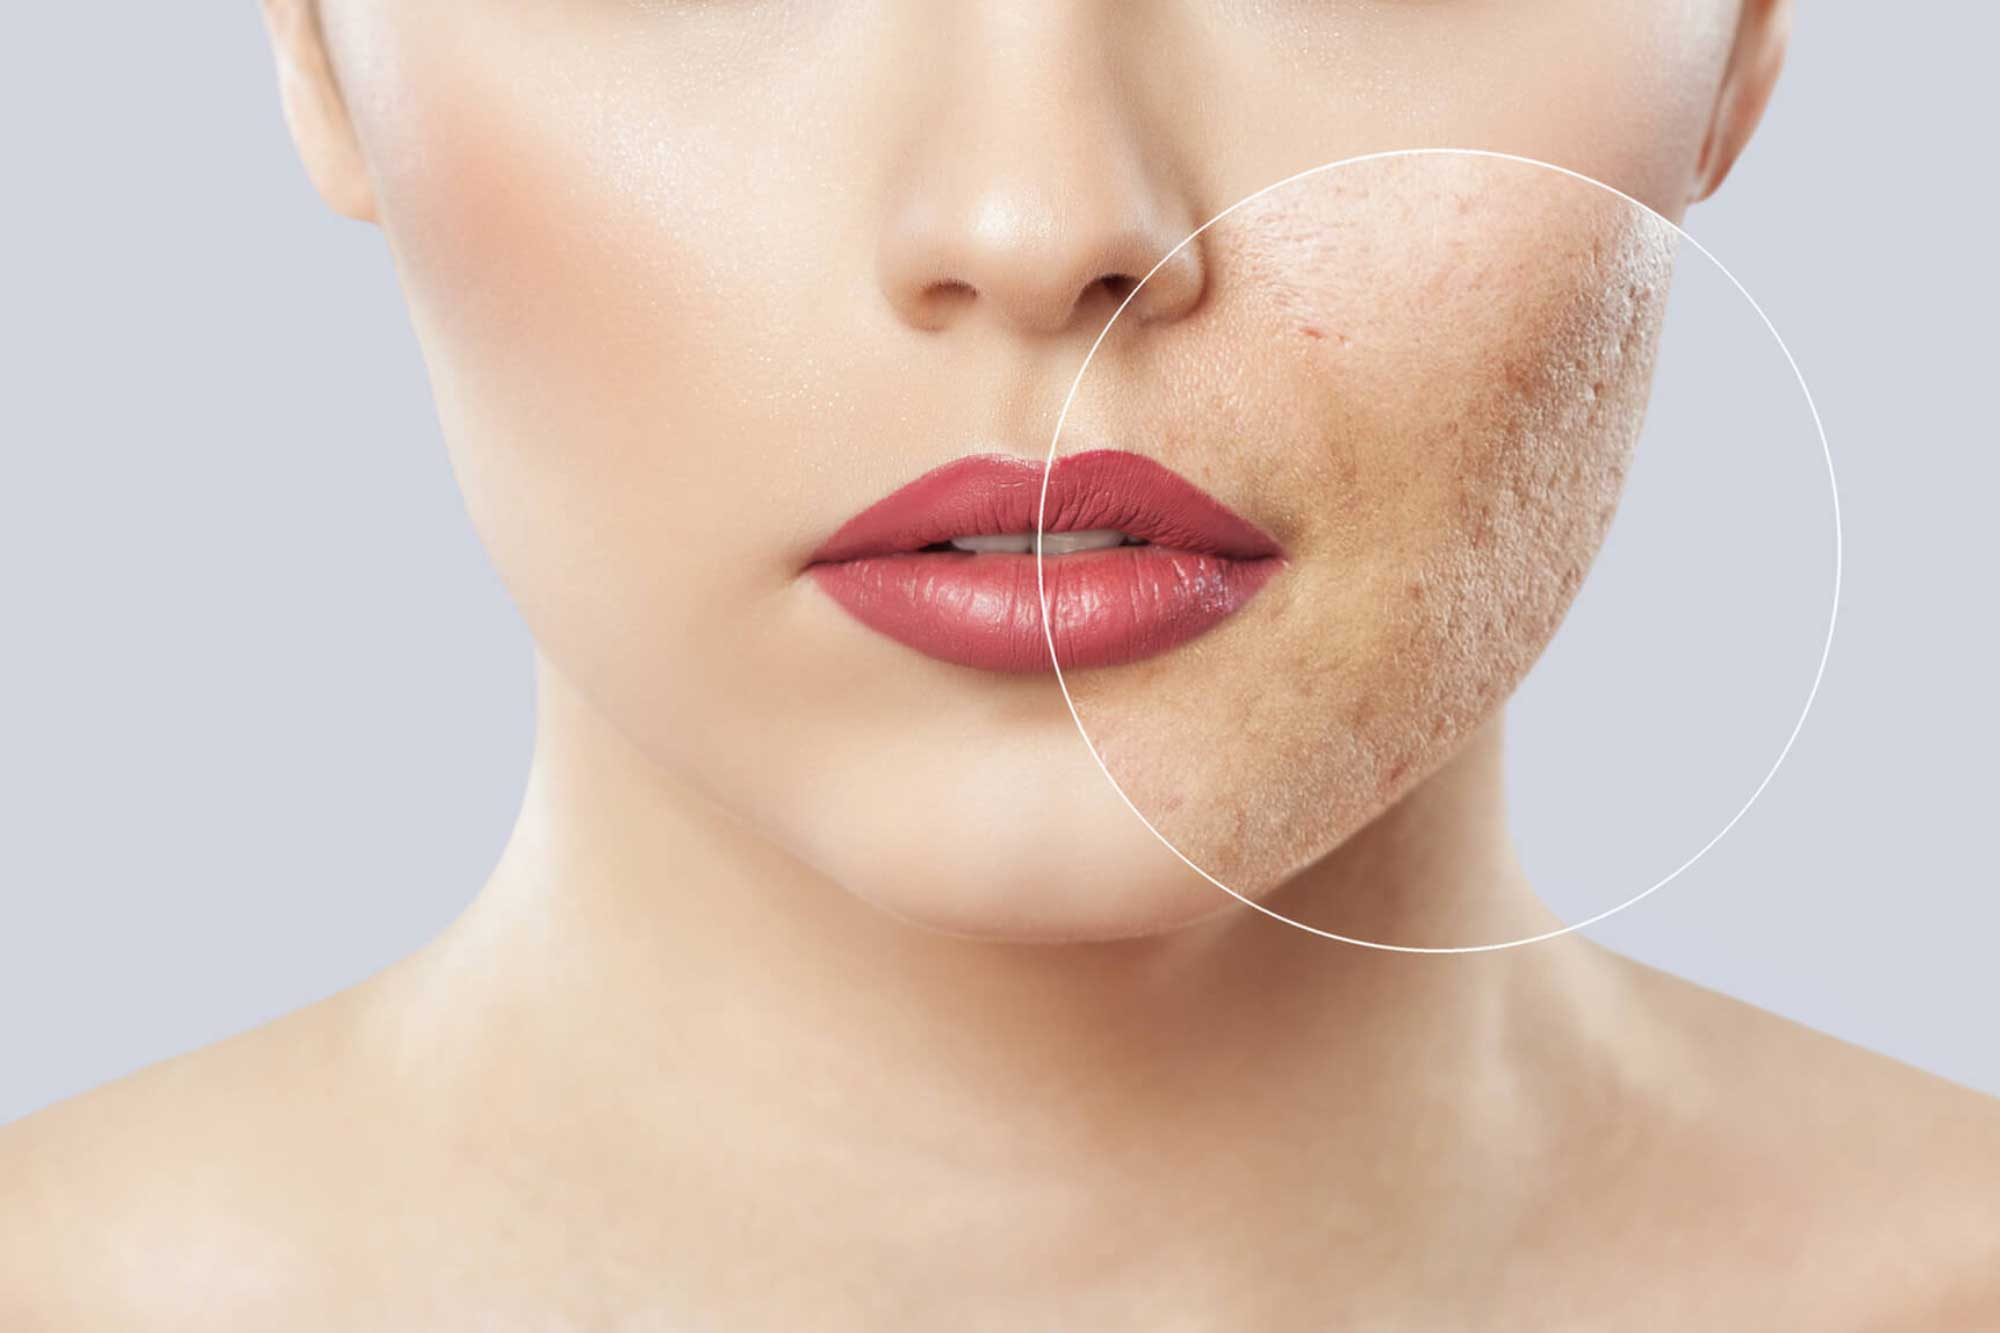 laser treatments before and after photos gallery plastic surgery atlanta ga